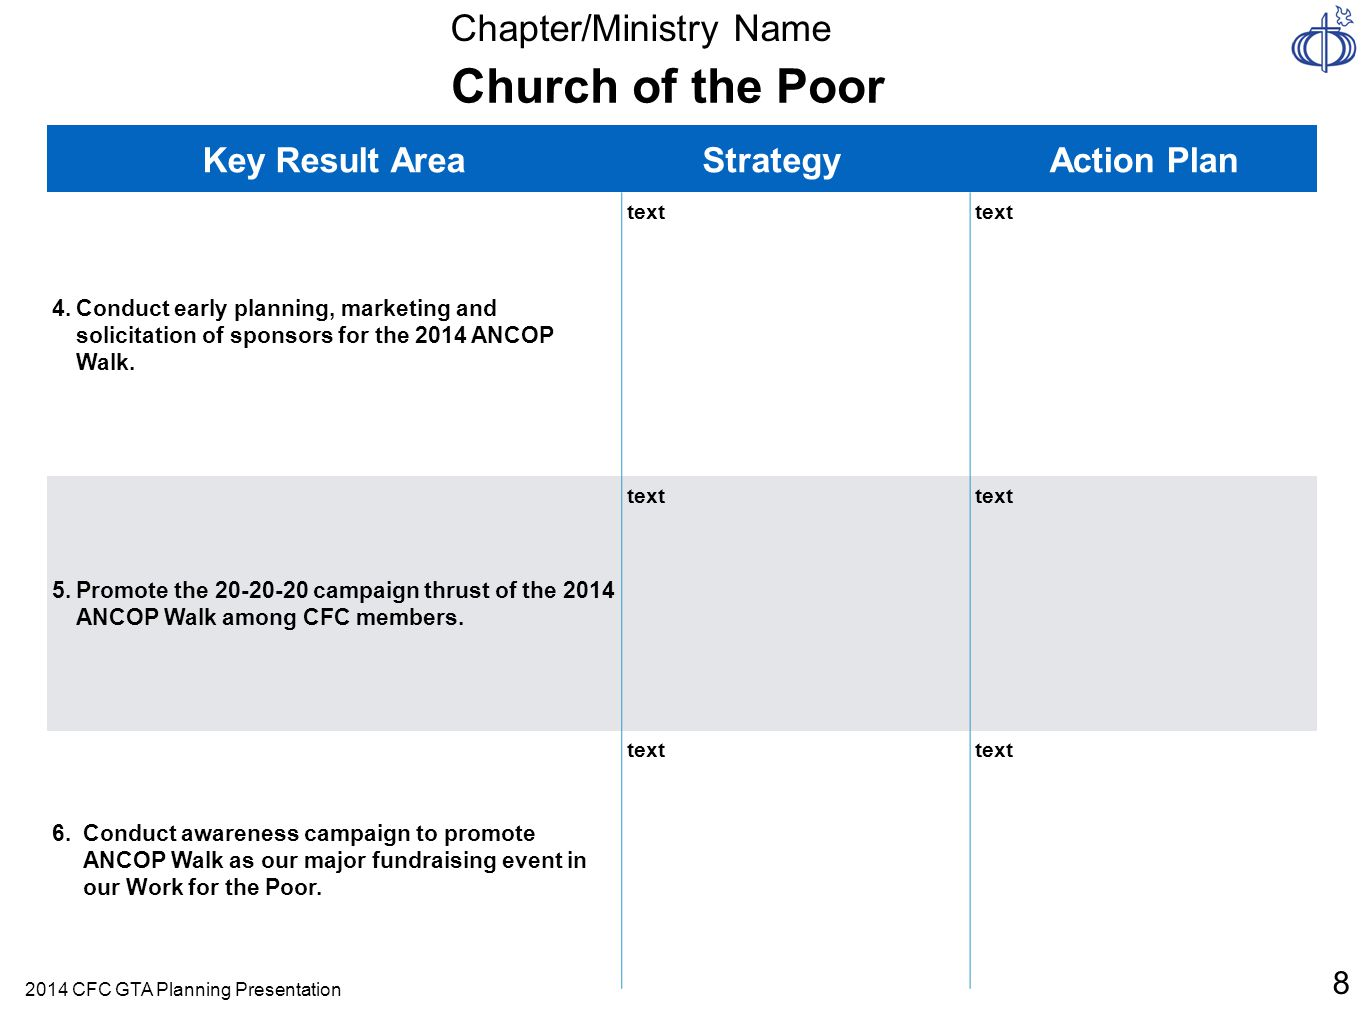 Church of the Poor Chapter/Ministry Name Key Result Area Strategy